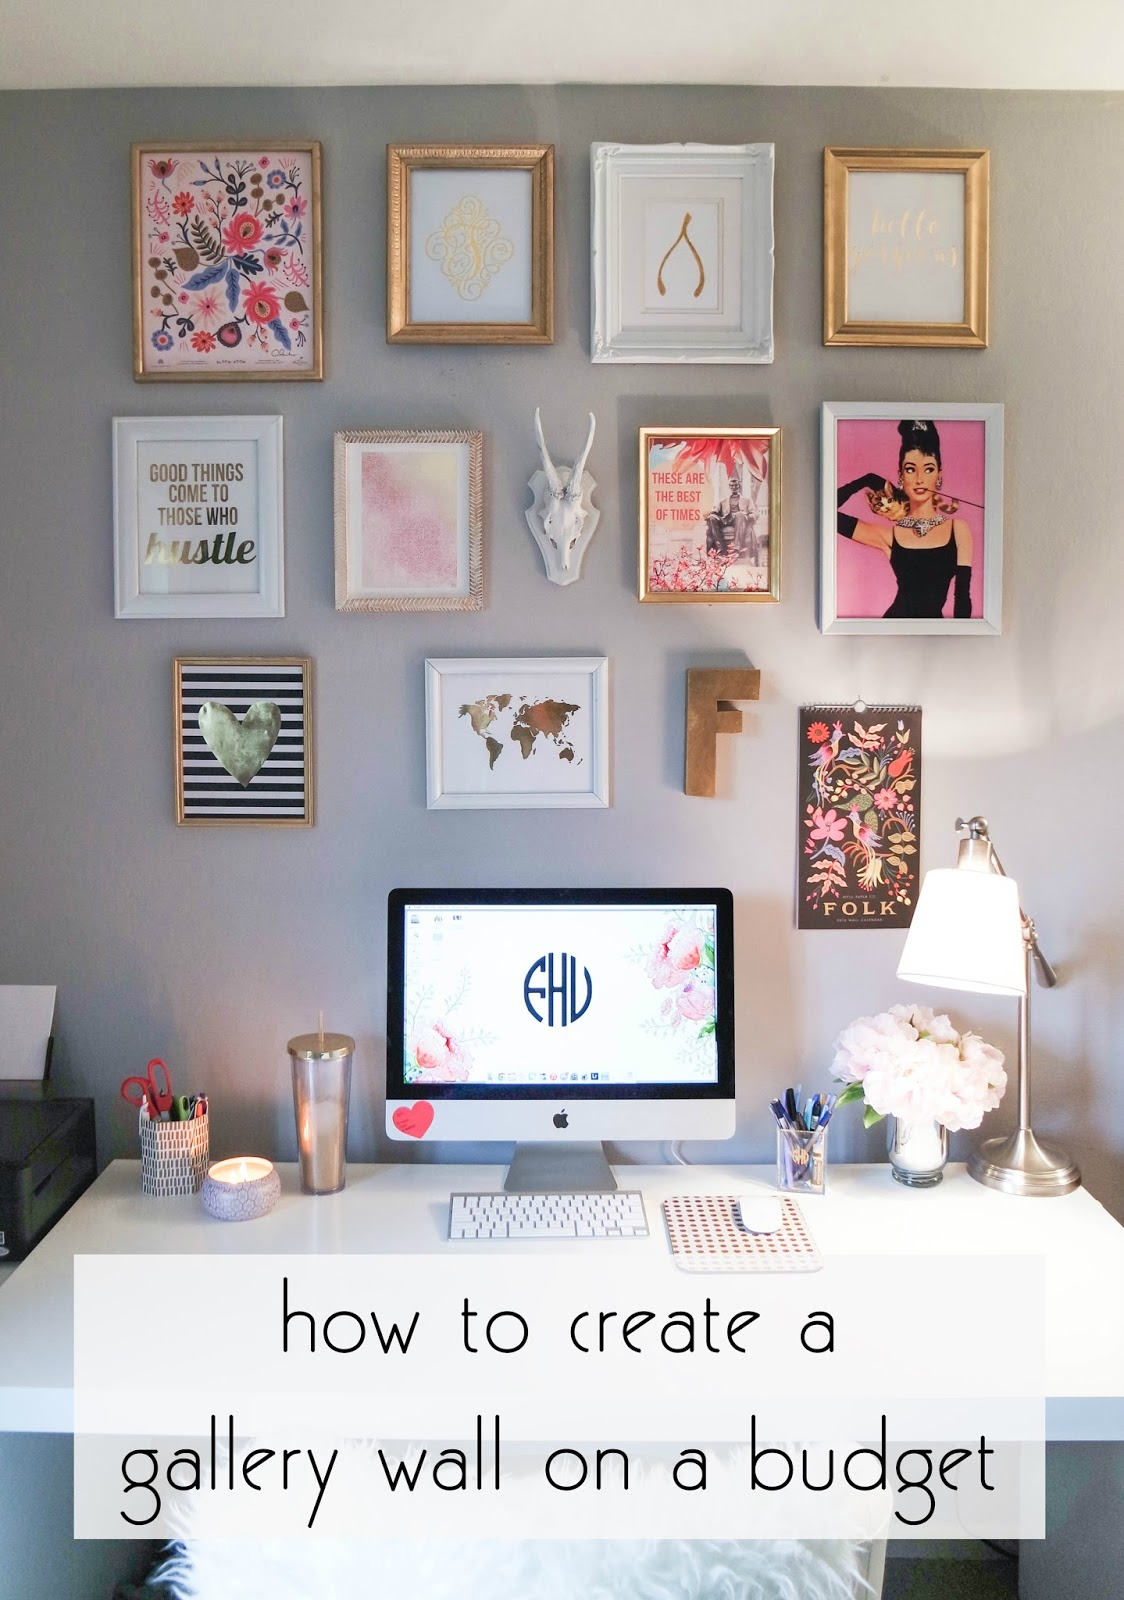 How To Make Wall Decoration Items : Franish creating a gallery wall on budget